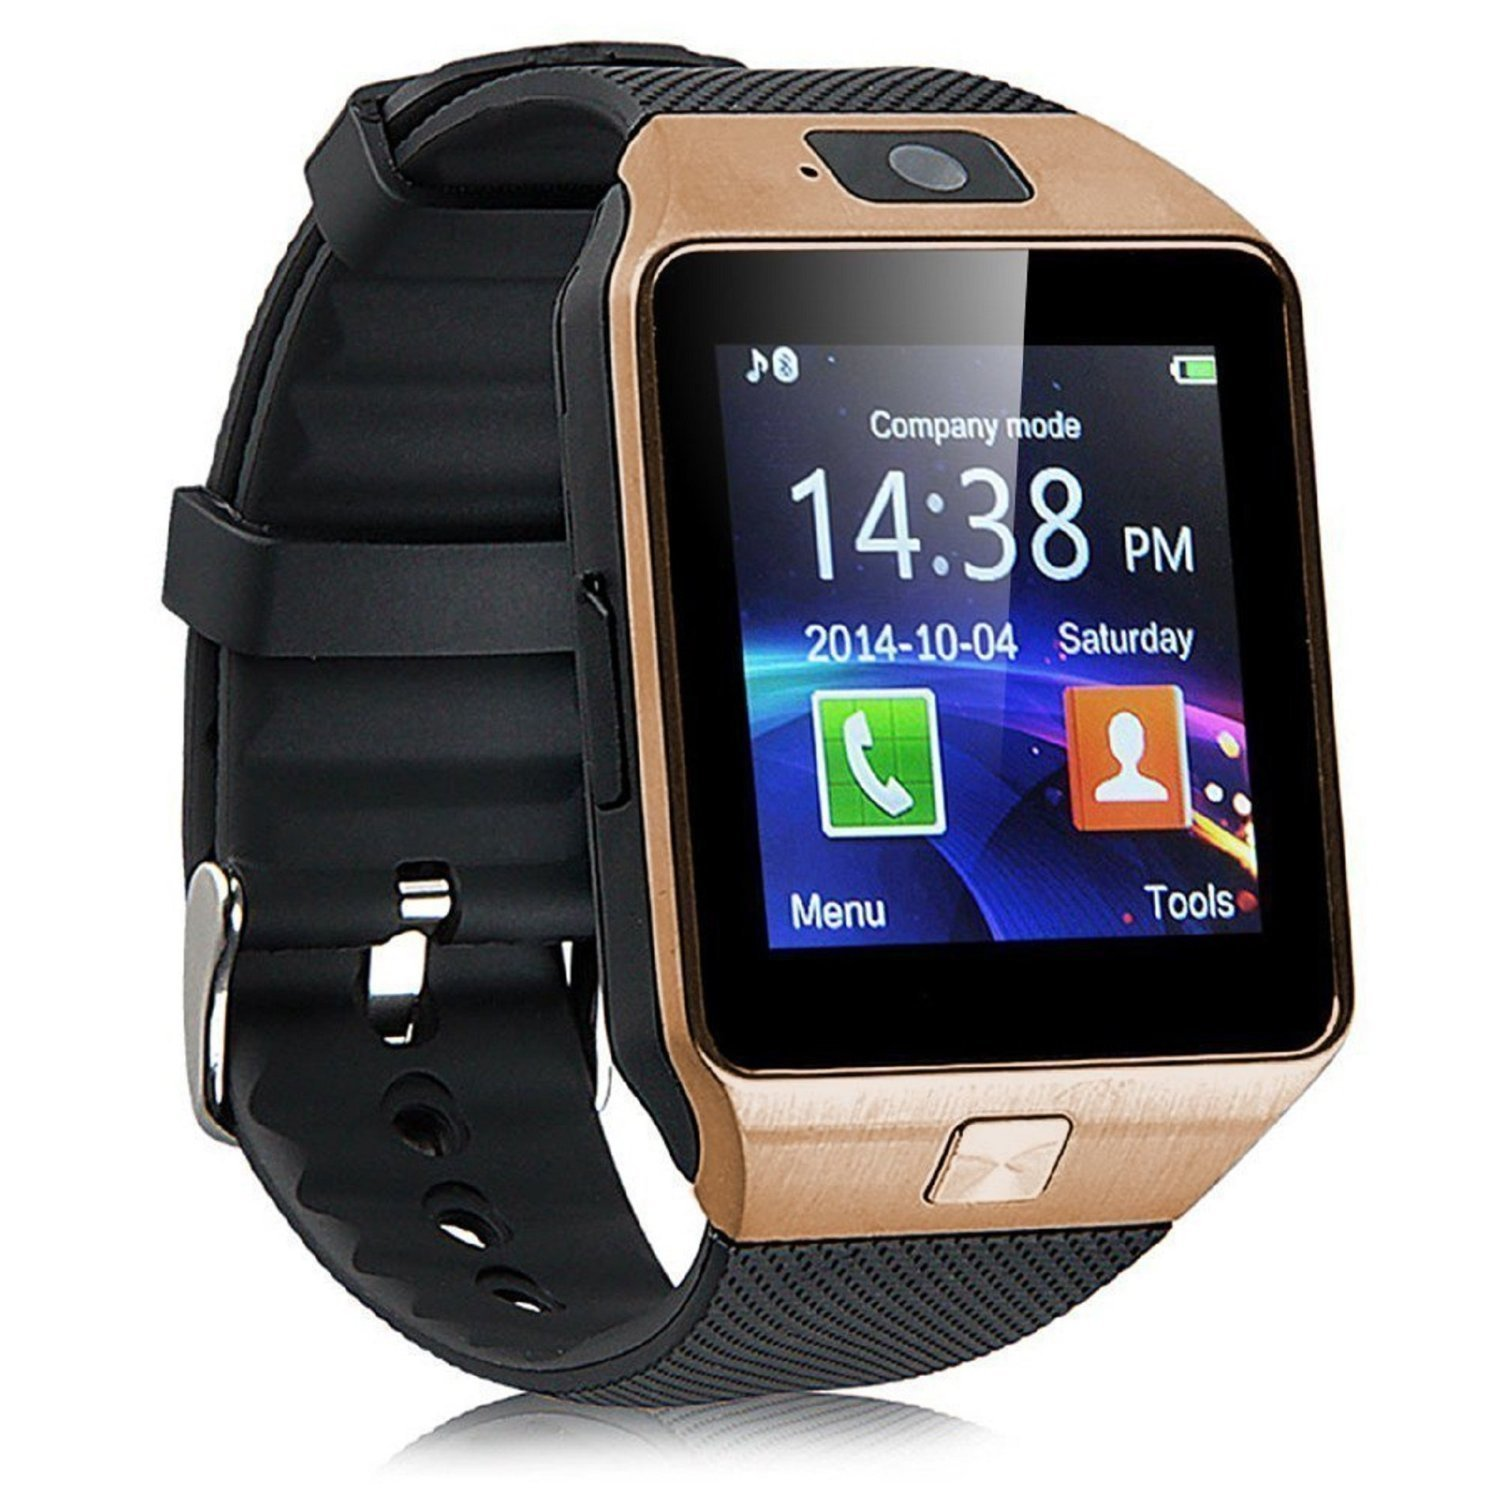 Padgene DZ09 Bluetooth Smart Watch with Camera for Samsung S5 / Note 2 / 3 / 4, Nexus 6, Htc, Sony and Other Android Smartphones, Gold (Black Band)